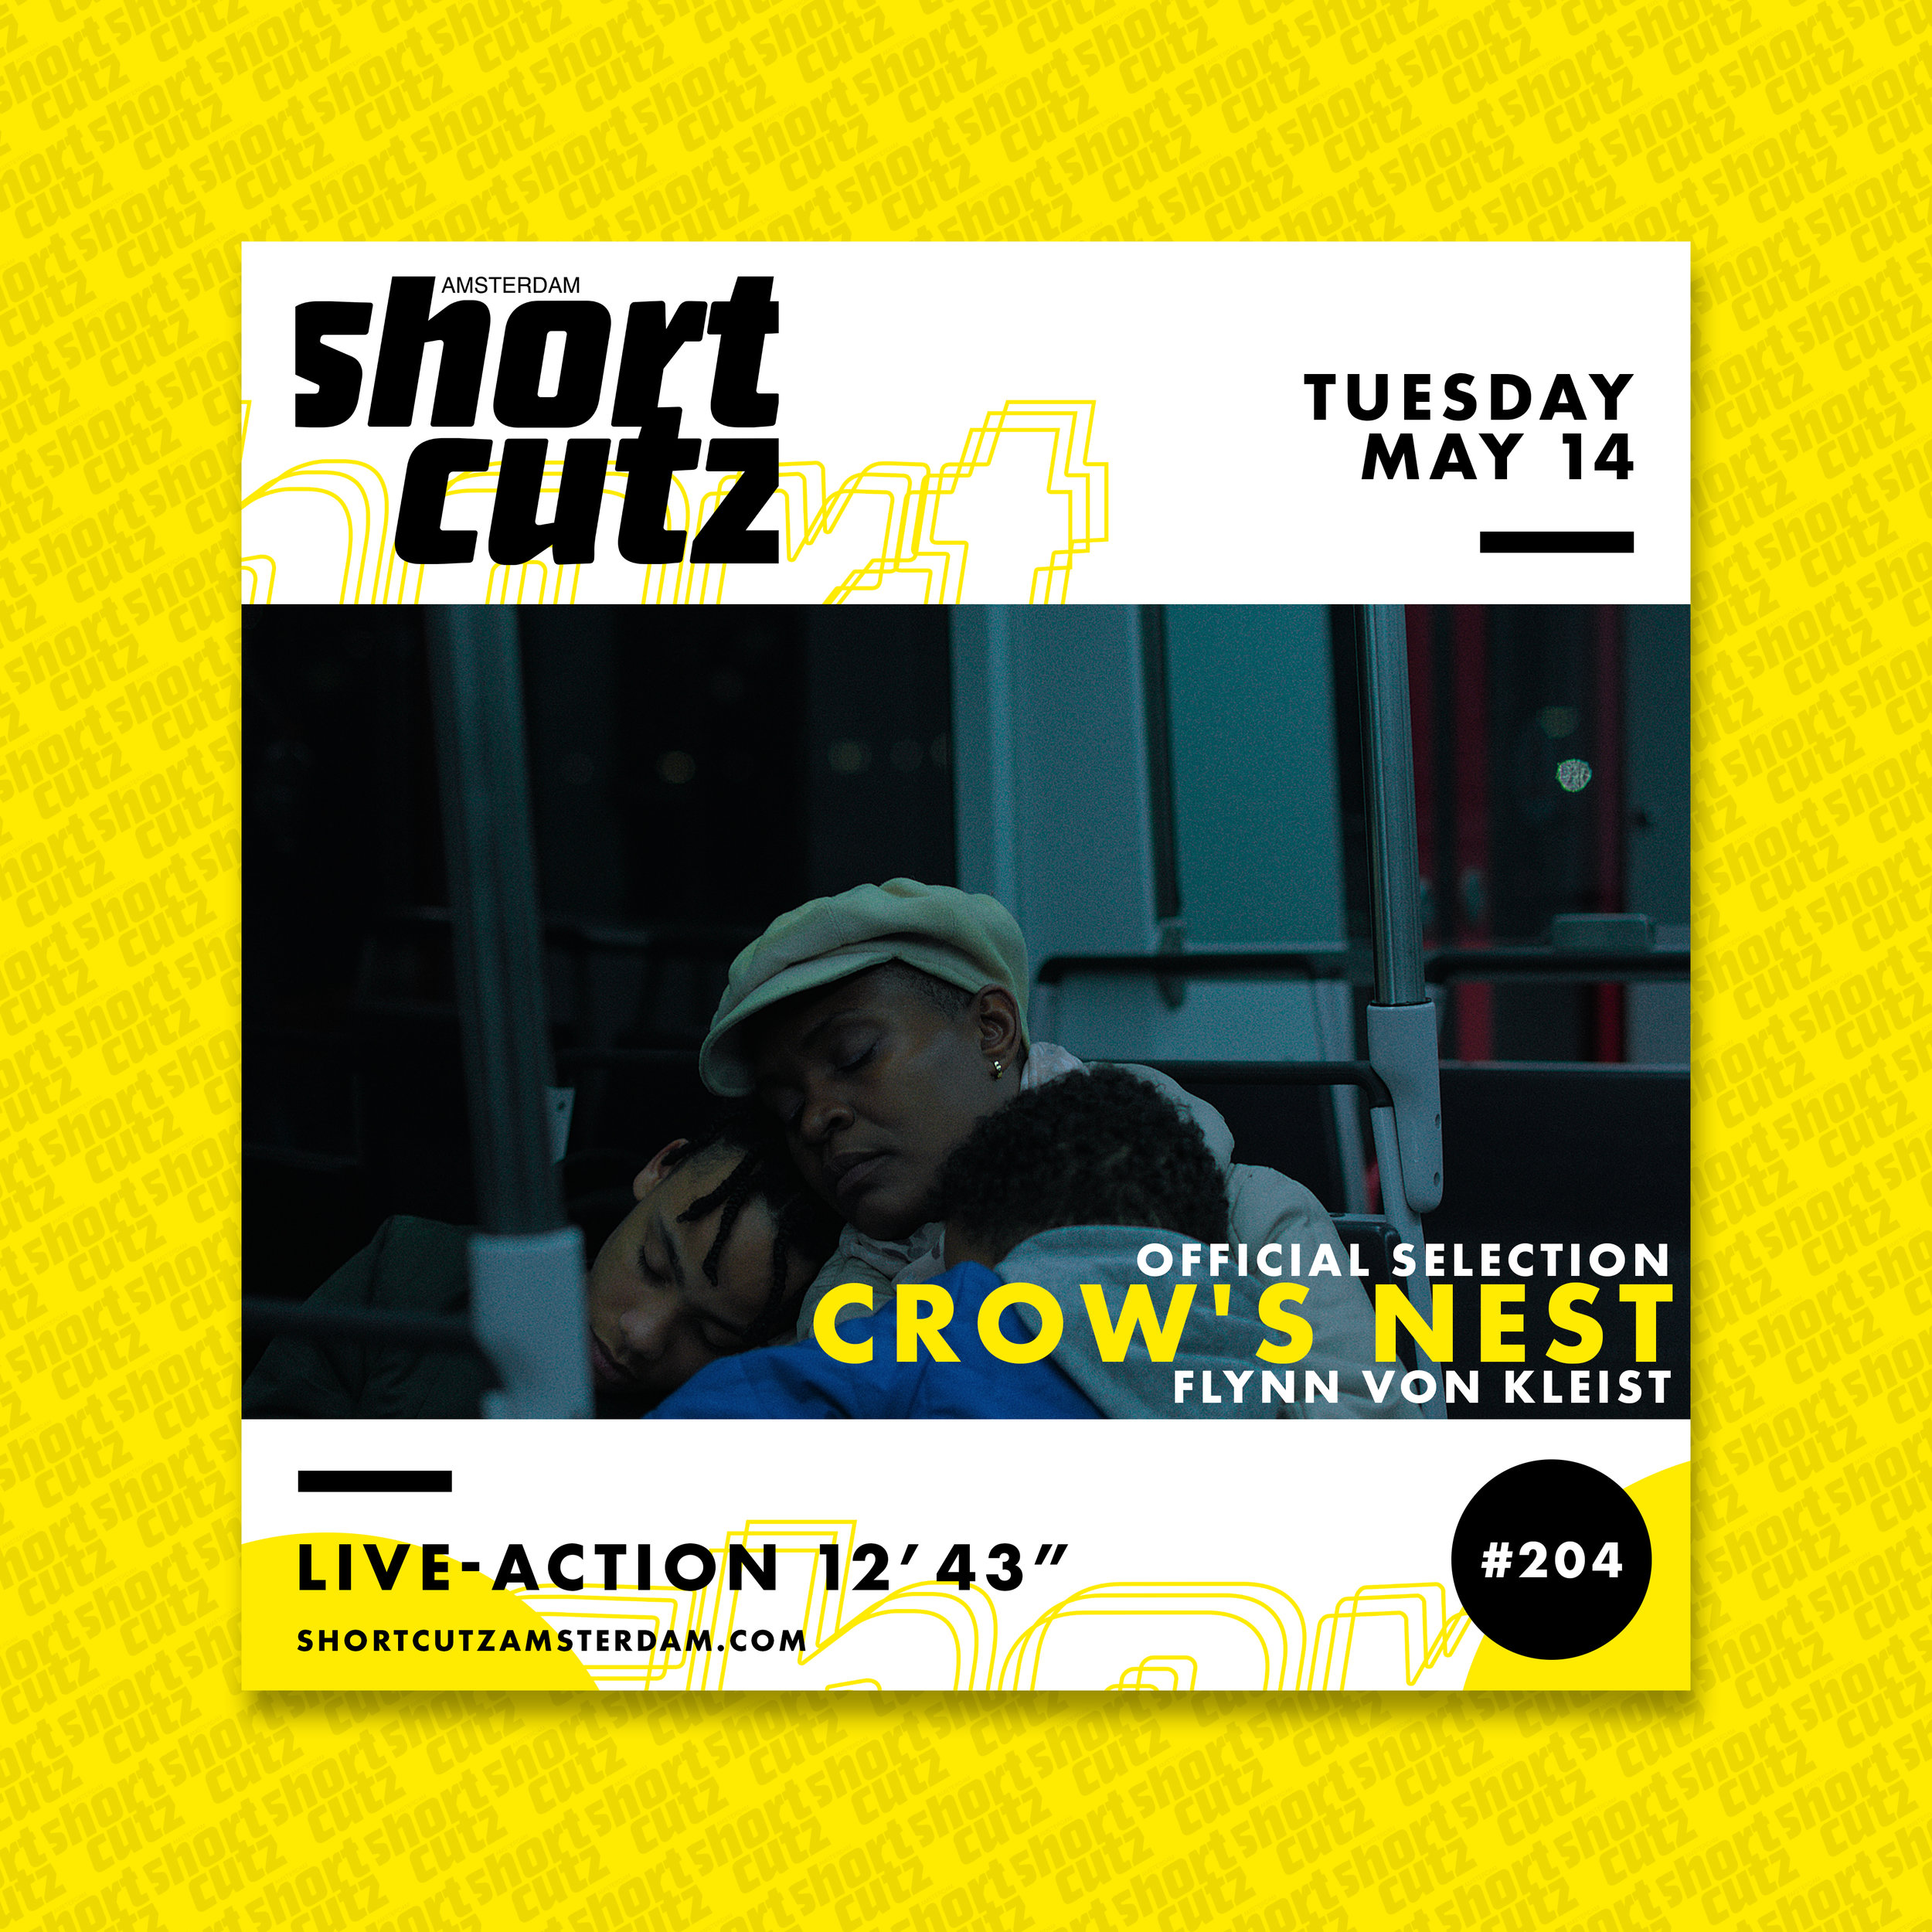 #204 Poster Crows Nest.jpg